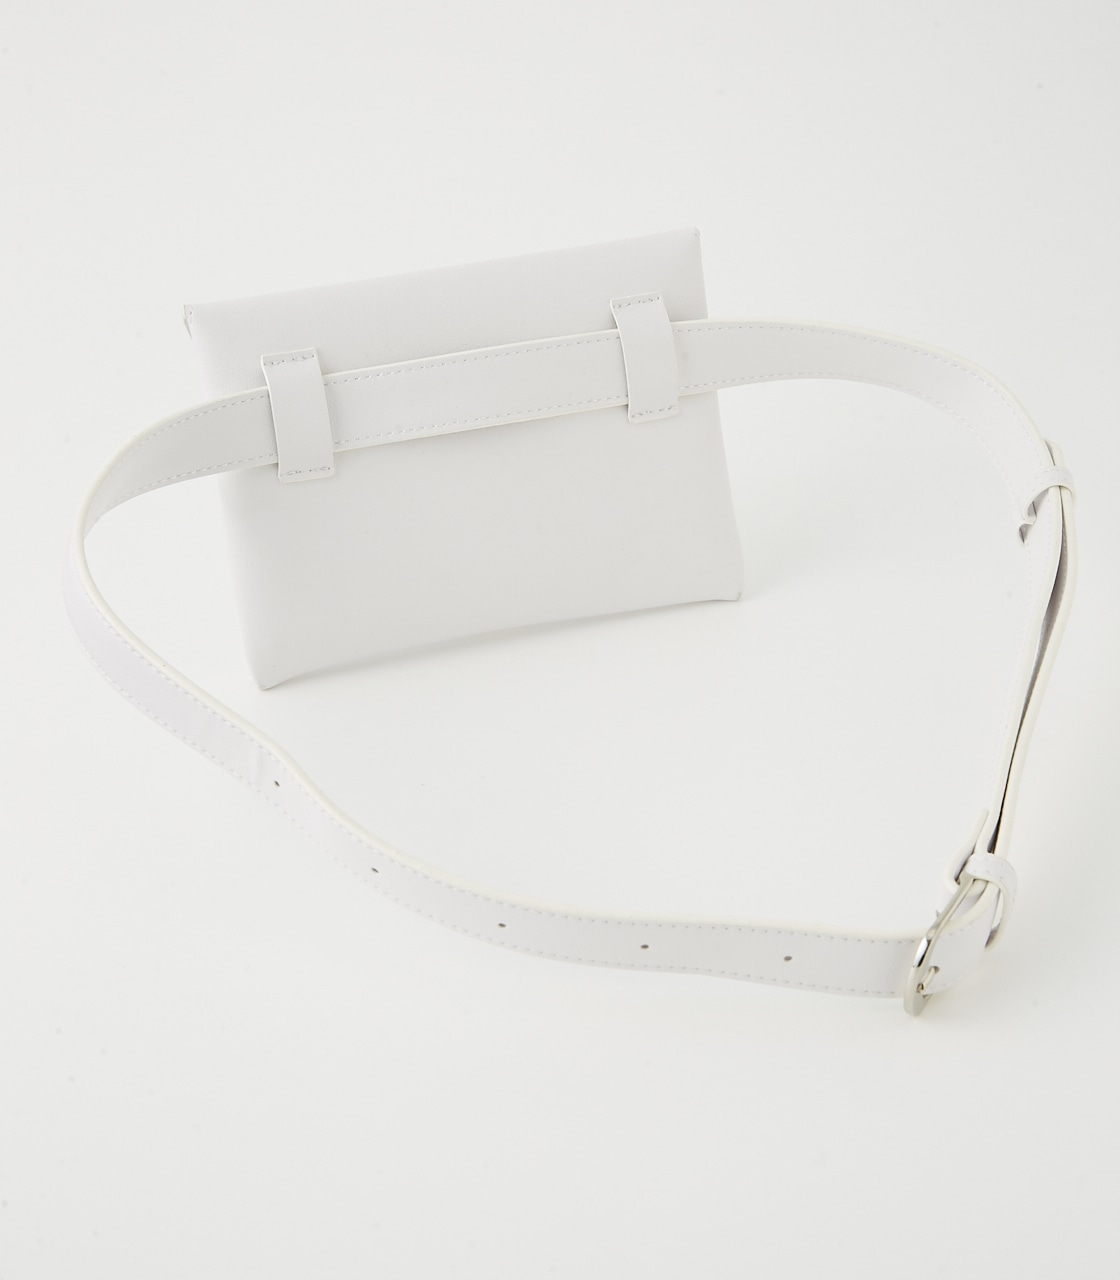 METAL MINI WAIST BAG BELT 詳細画像 WHT 3